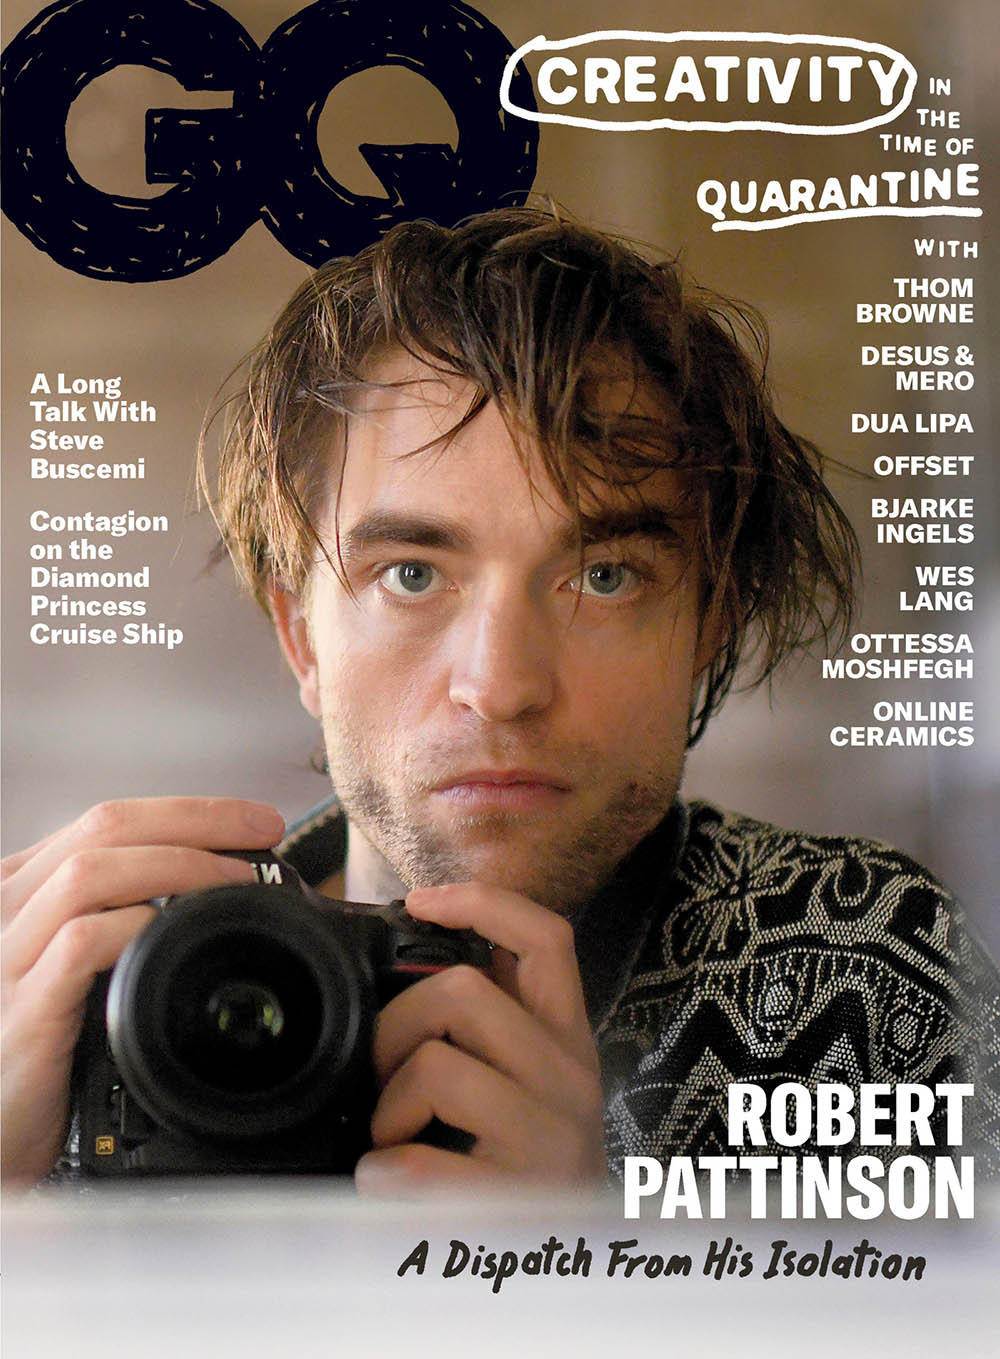 Robert Pattinson photographs himself for GQ USA June July 2020 cover